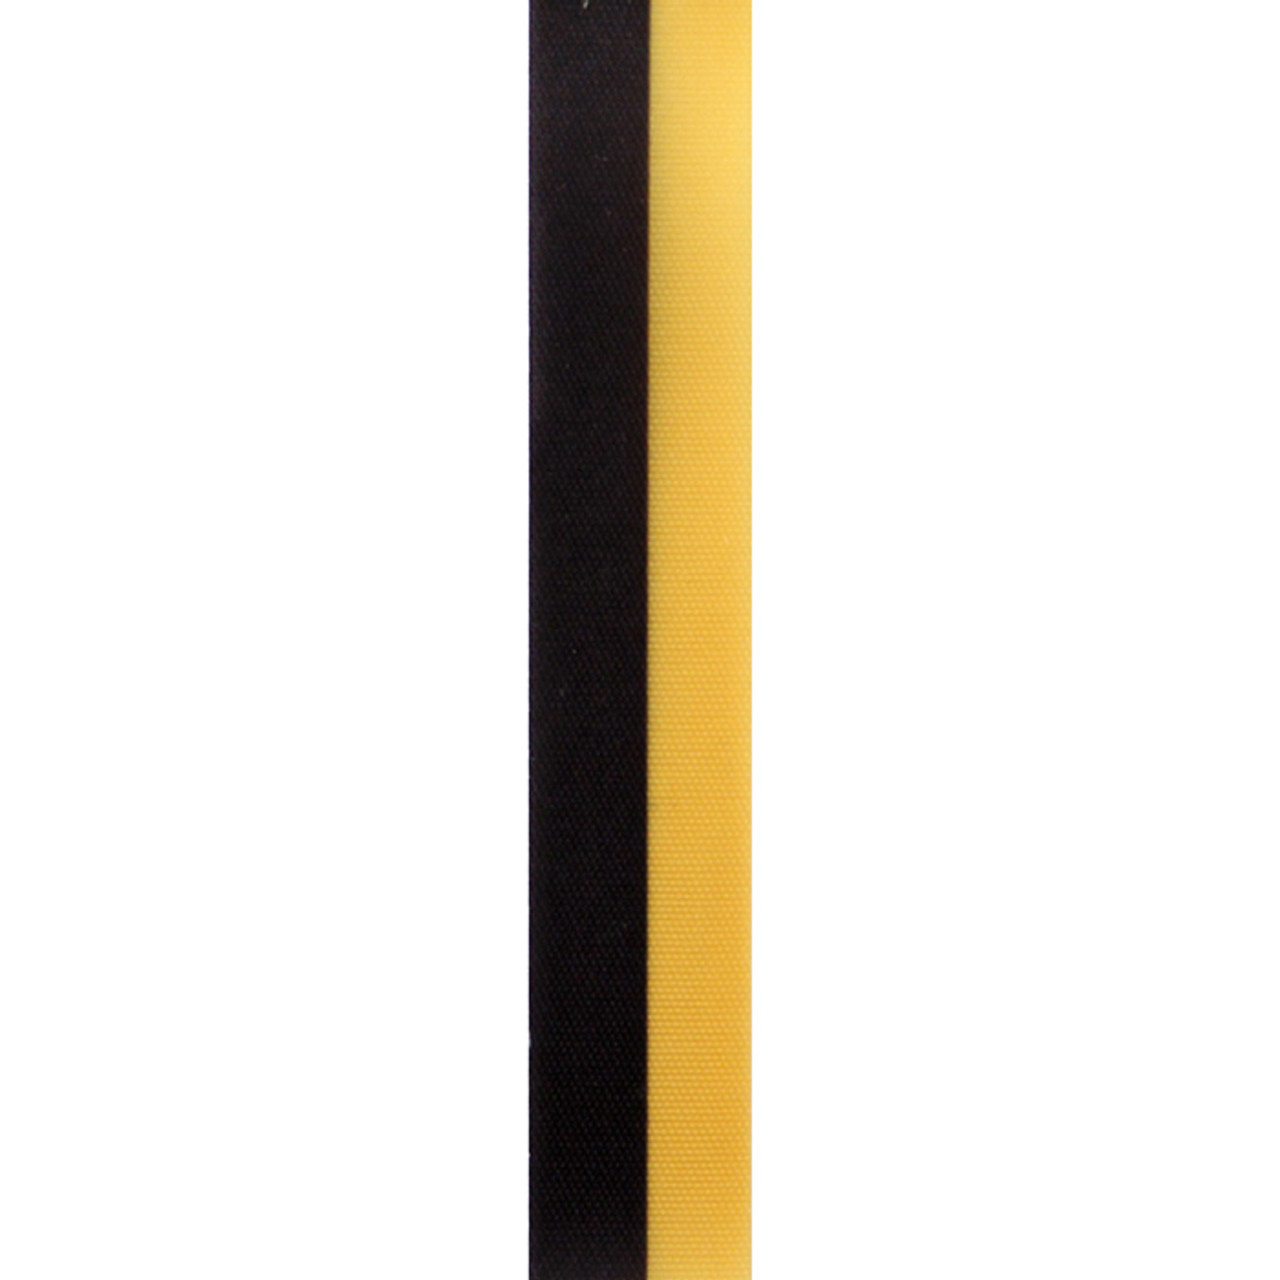 Gold and Black Vertical Striped Ribbon